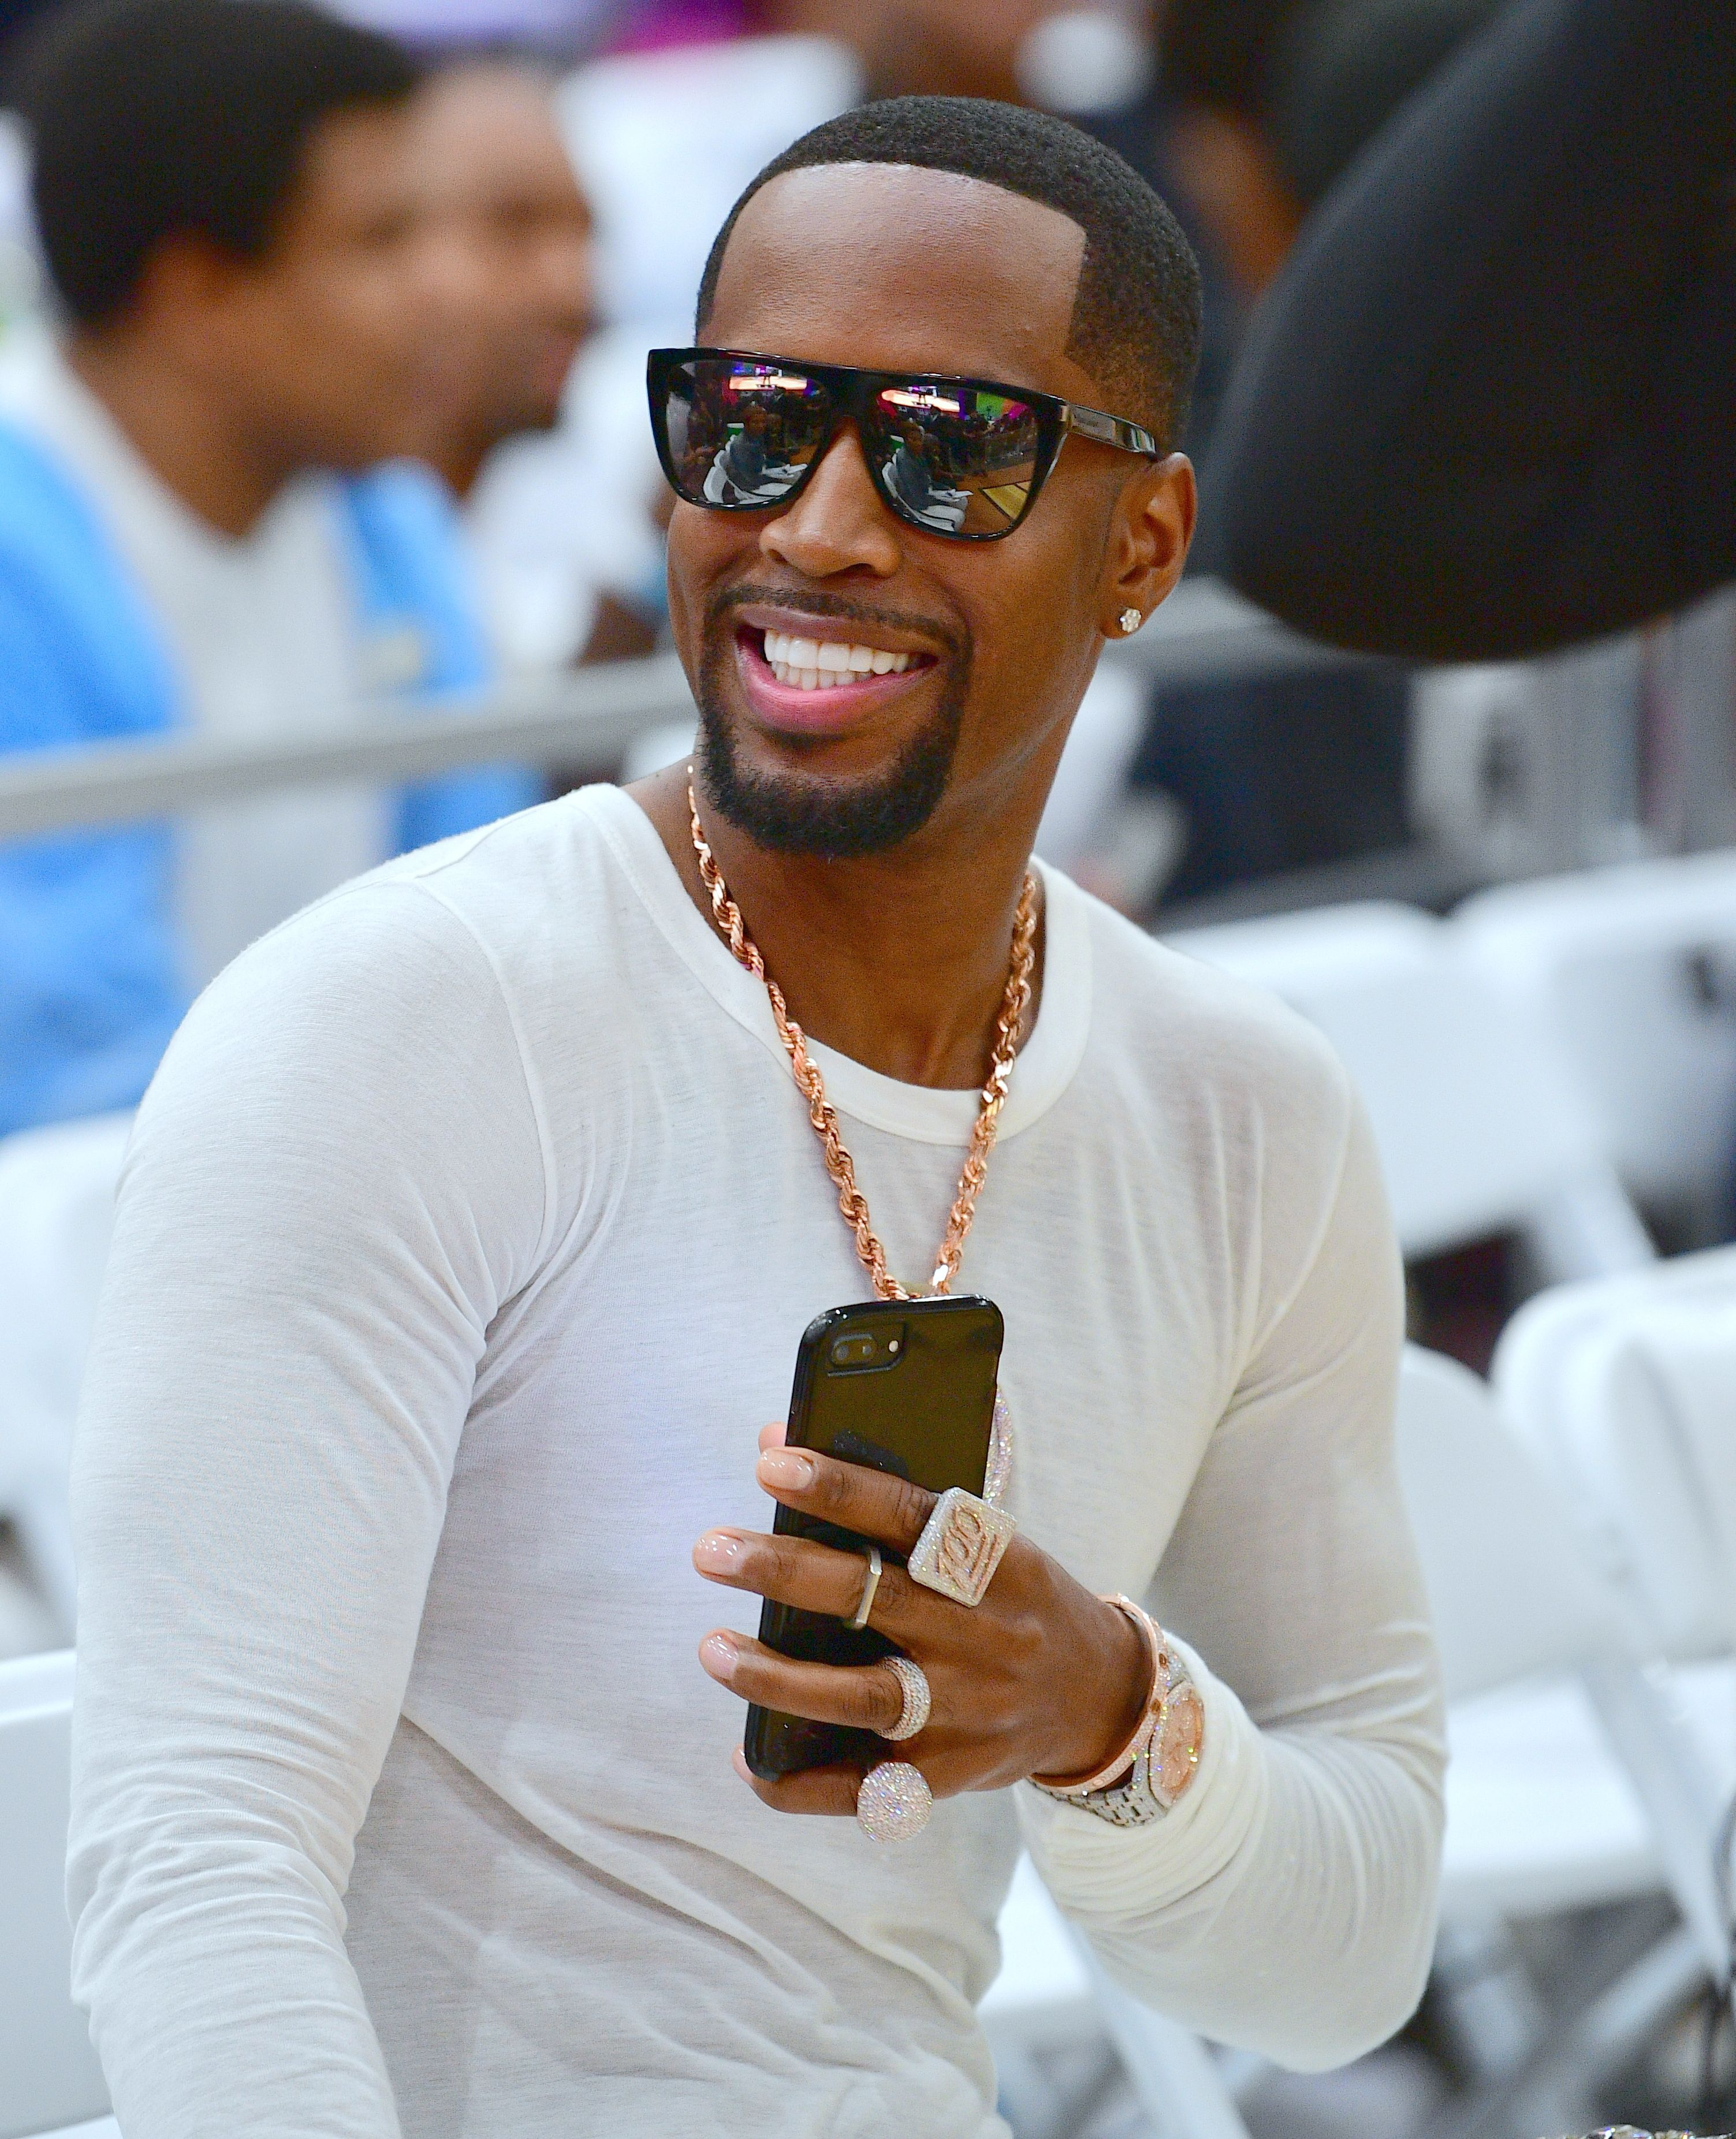 Safaree Samuels at the celebrity basketball game during the 2018 BET Experience at the Los Angeles Convention Center on June 23, 2018 | Photo: Getty Images